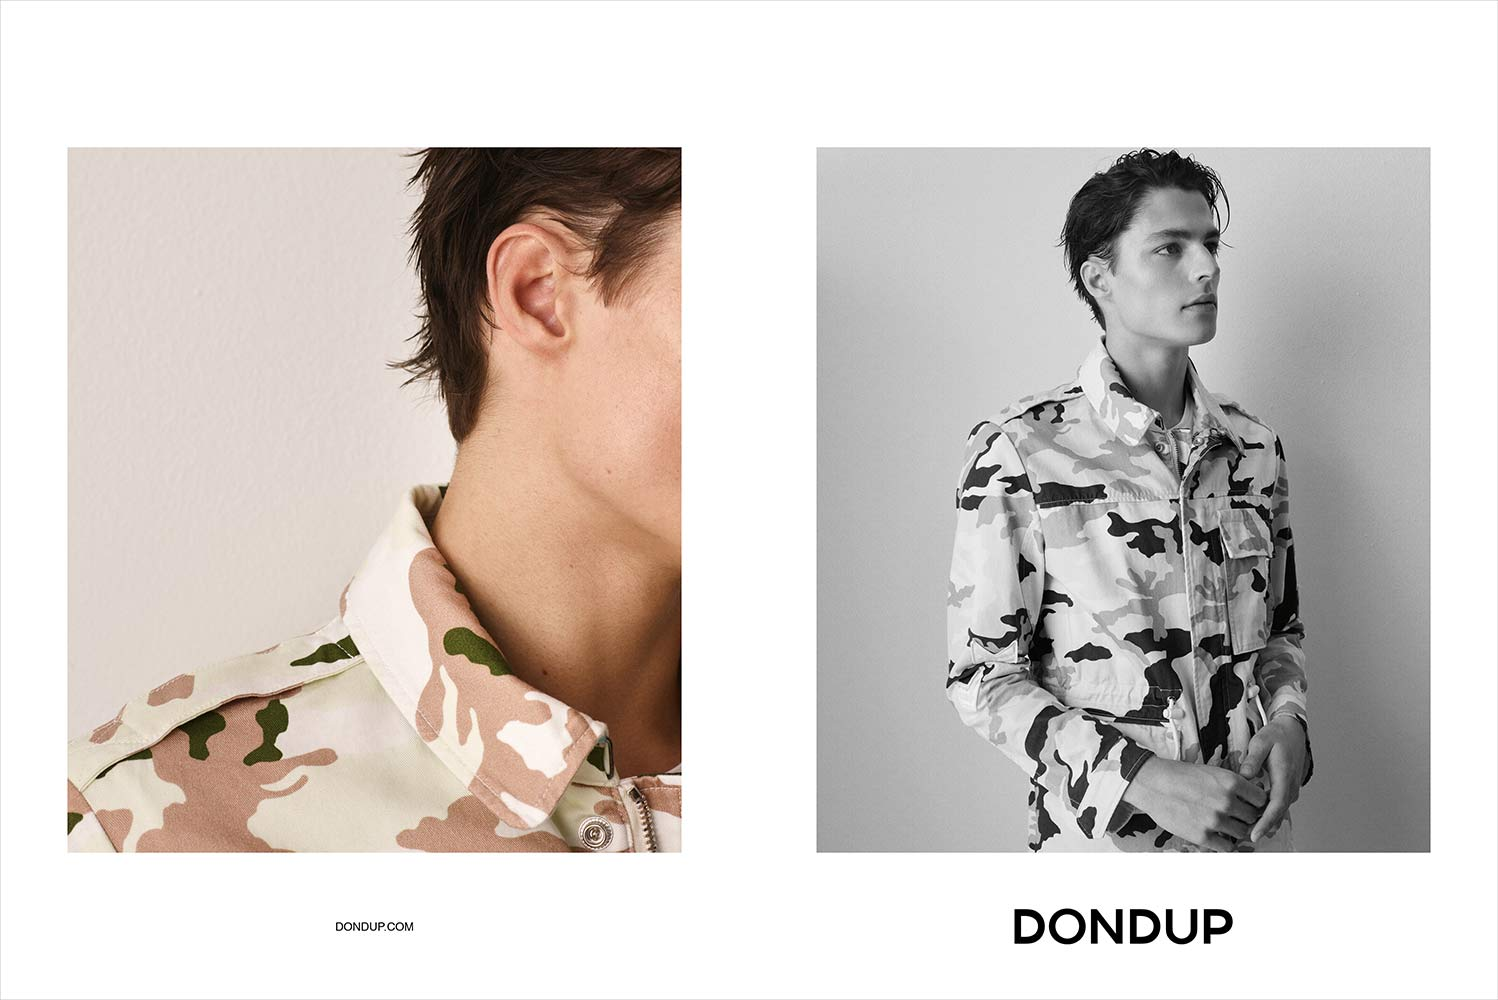 Dondup by Margherita Moro